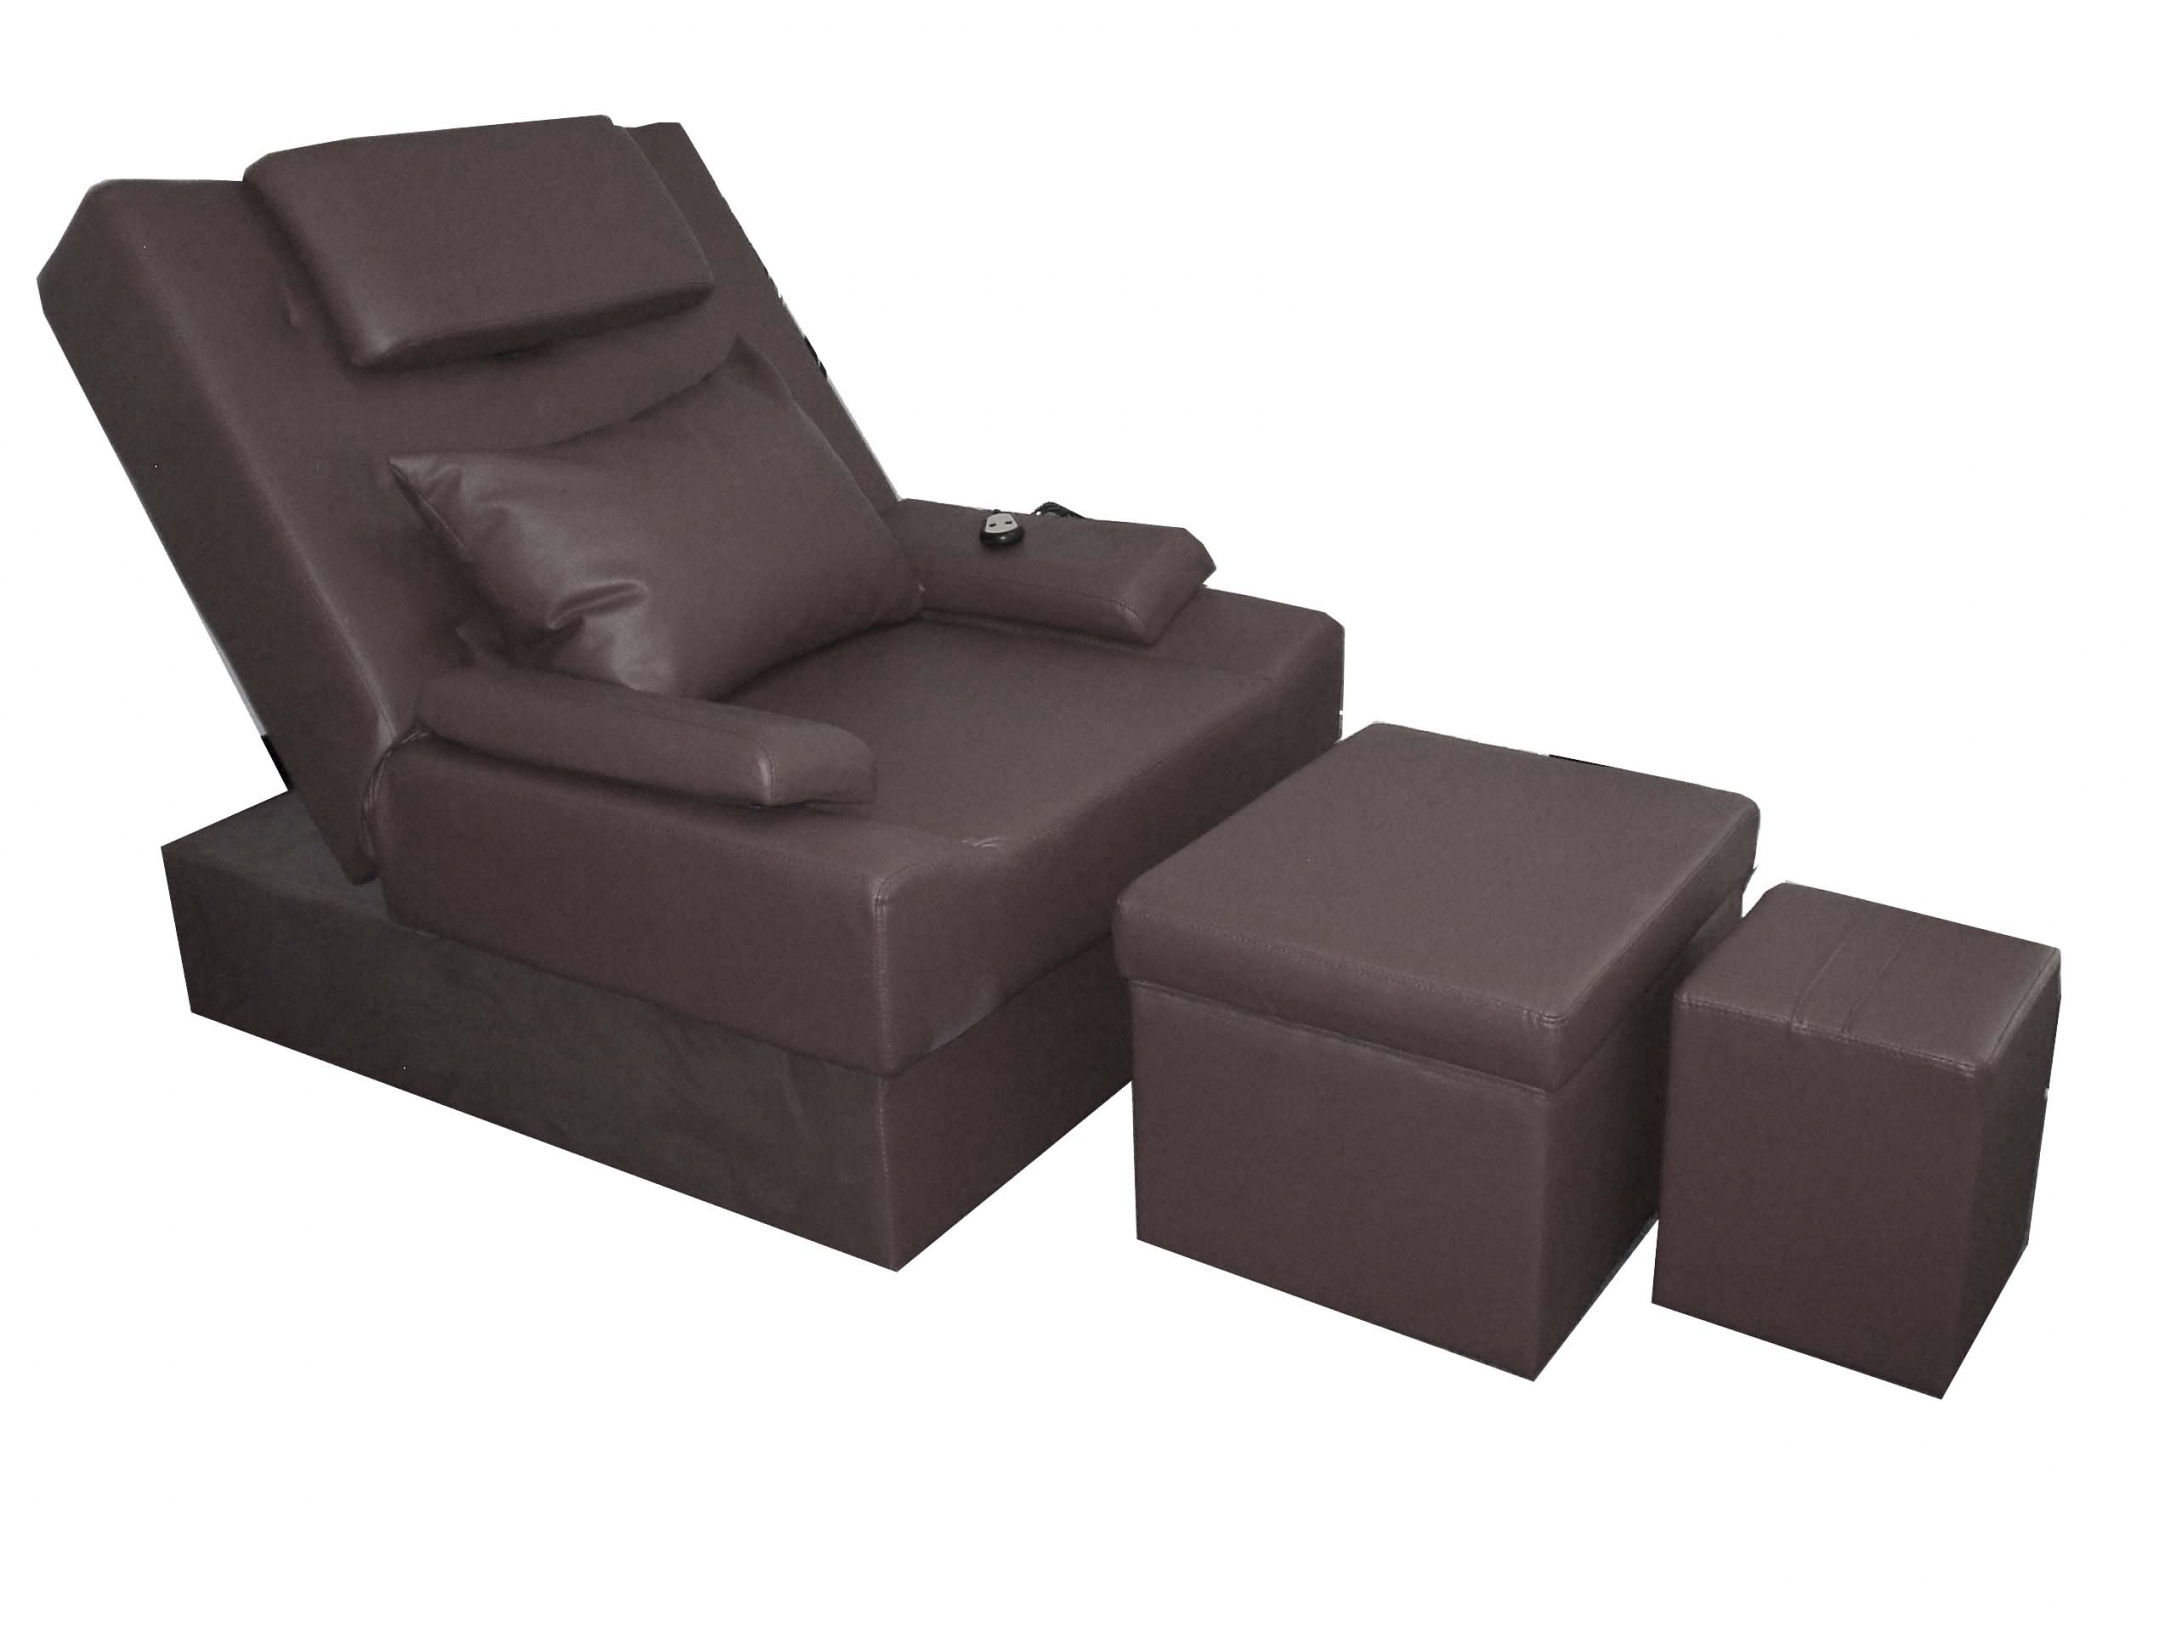 Foot Massage Sofas Throughout Preferred Foot Massage Chairs (View 4 of 20)